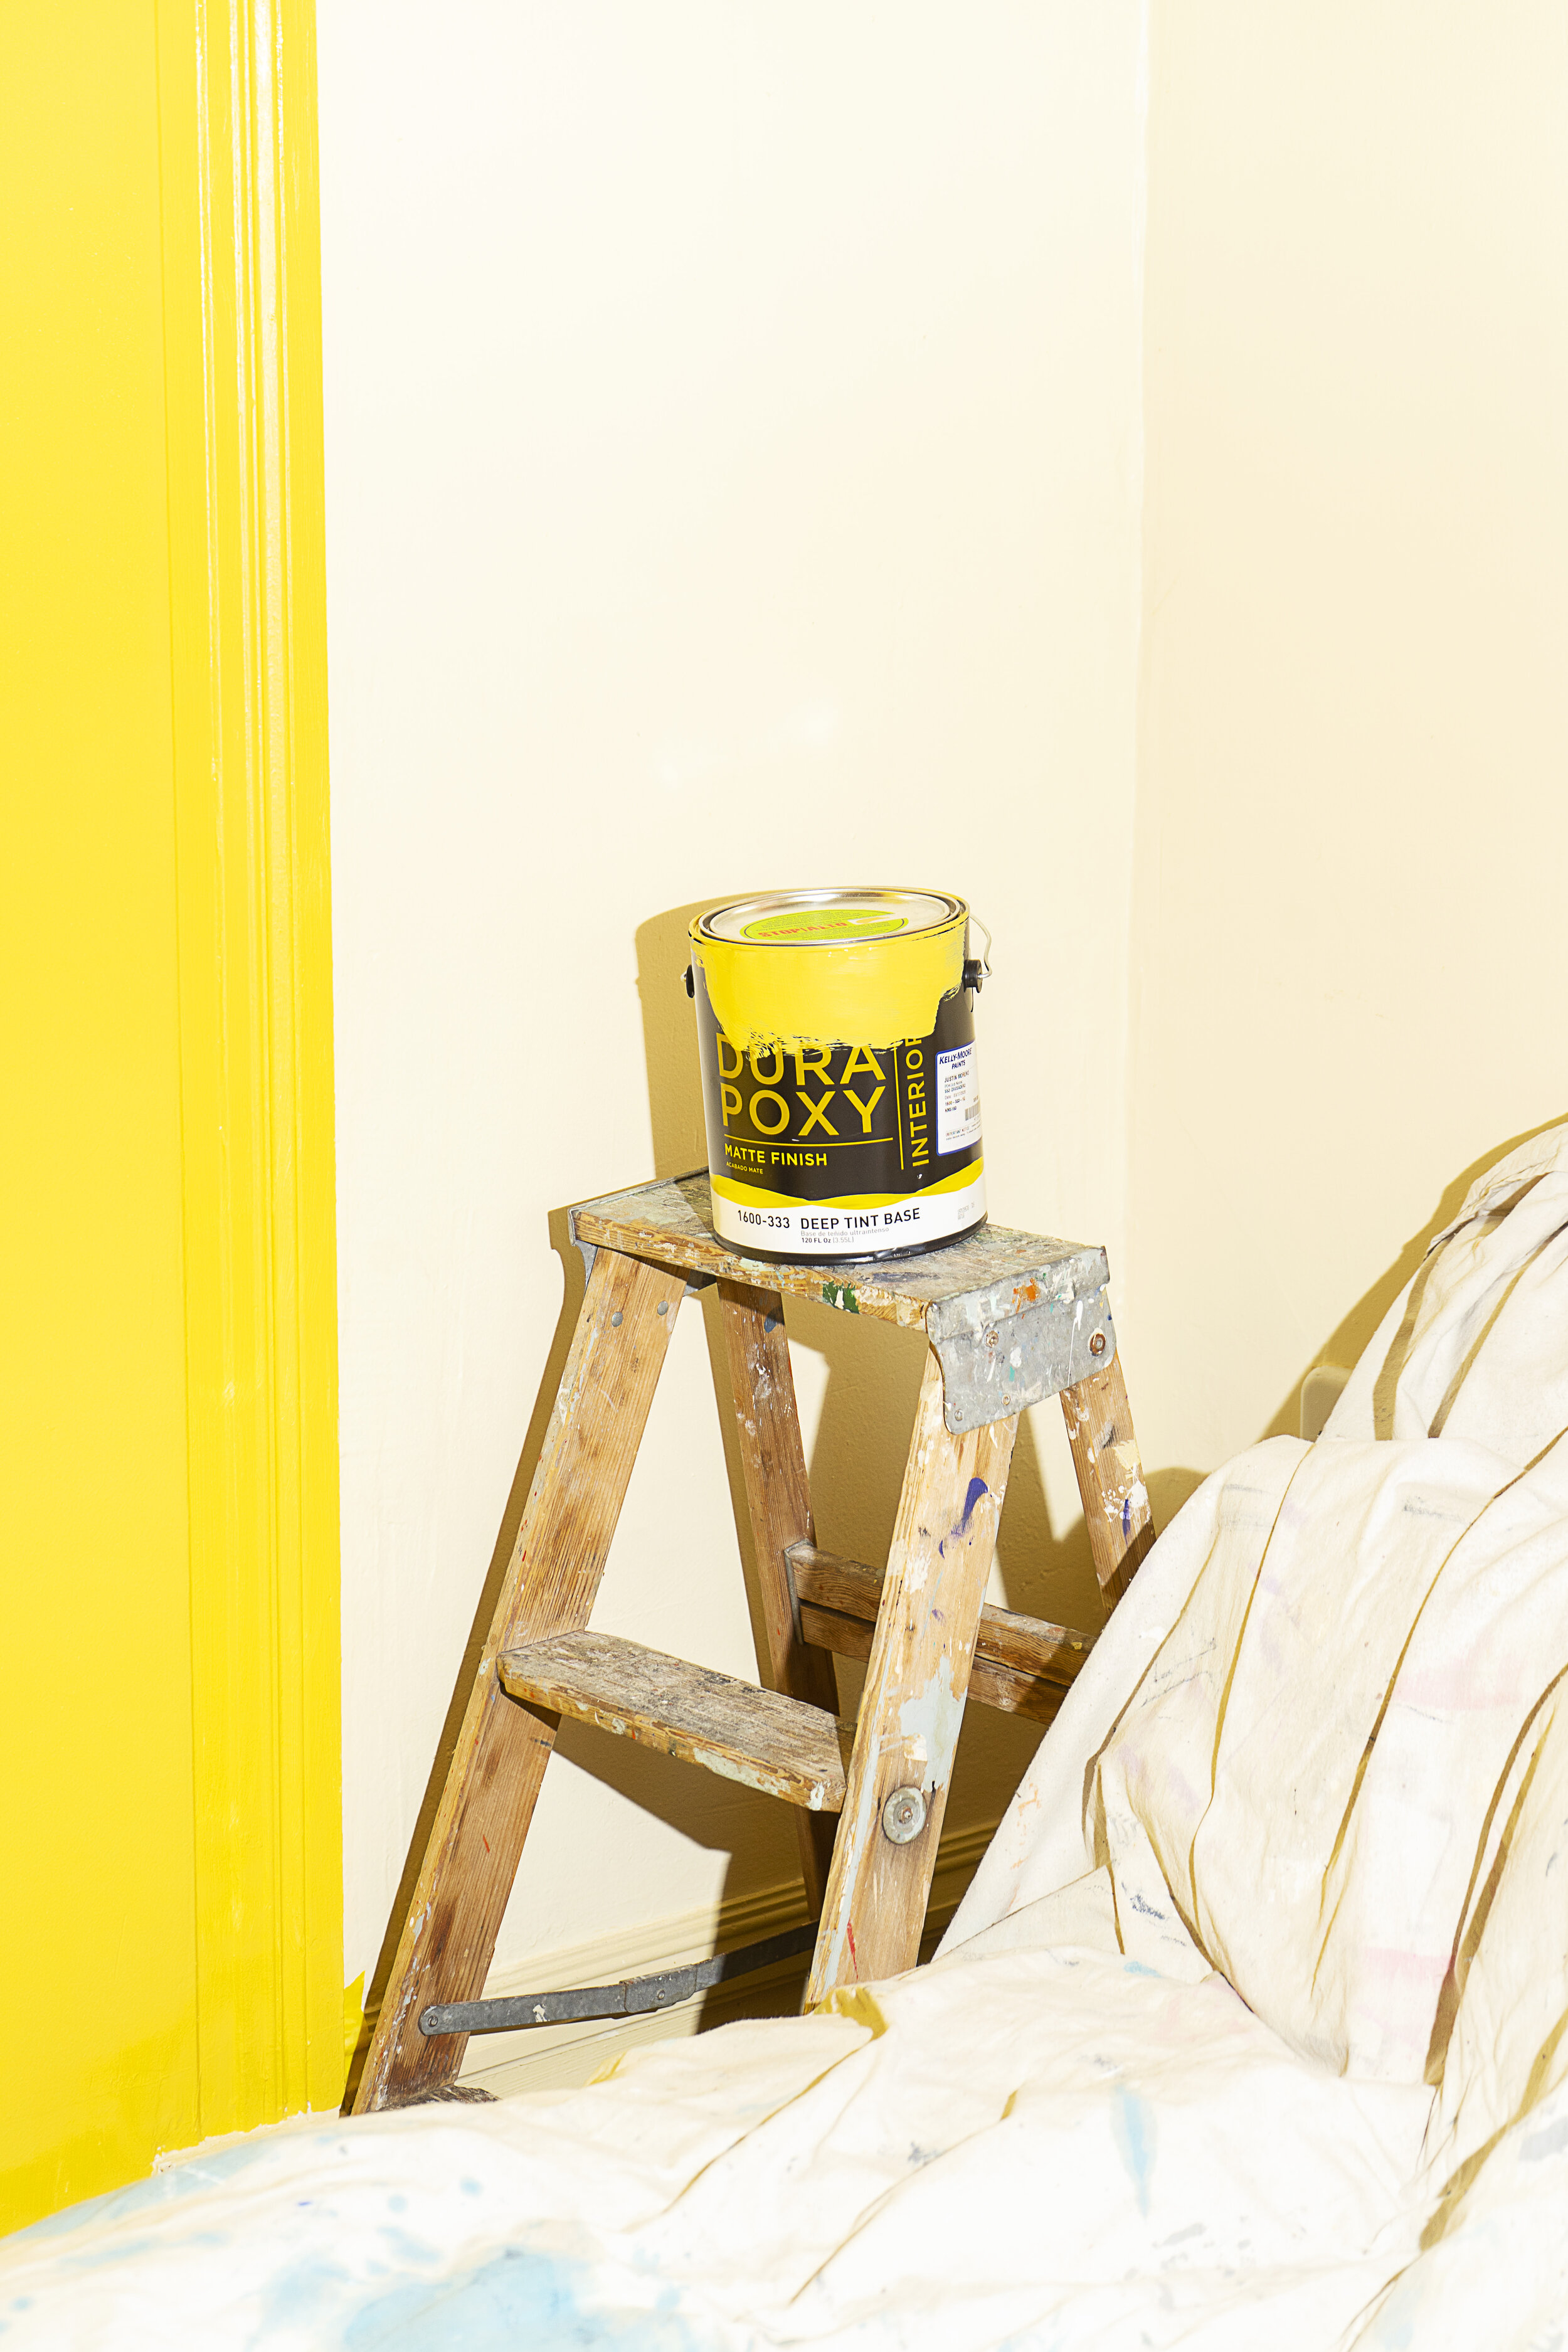 How Our Office Move Got A Bright Sunny Addition Thanks to Kelly-Moore Paints